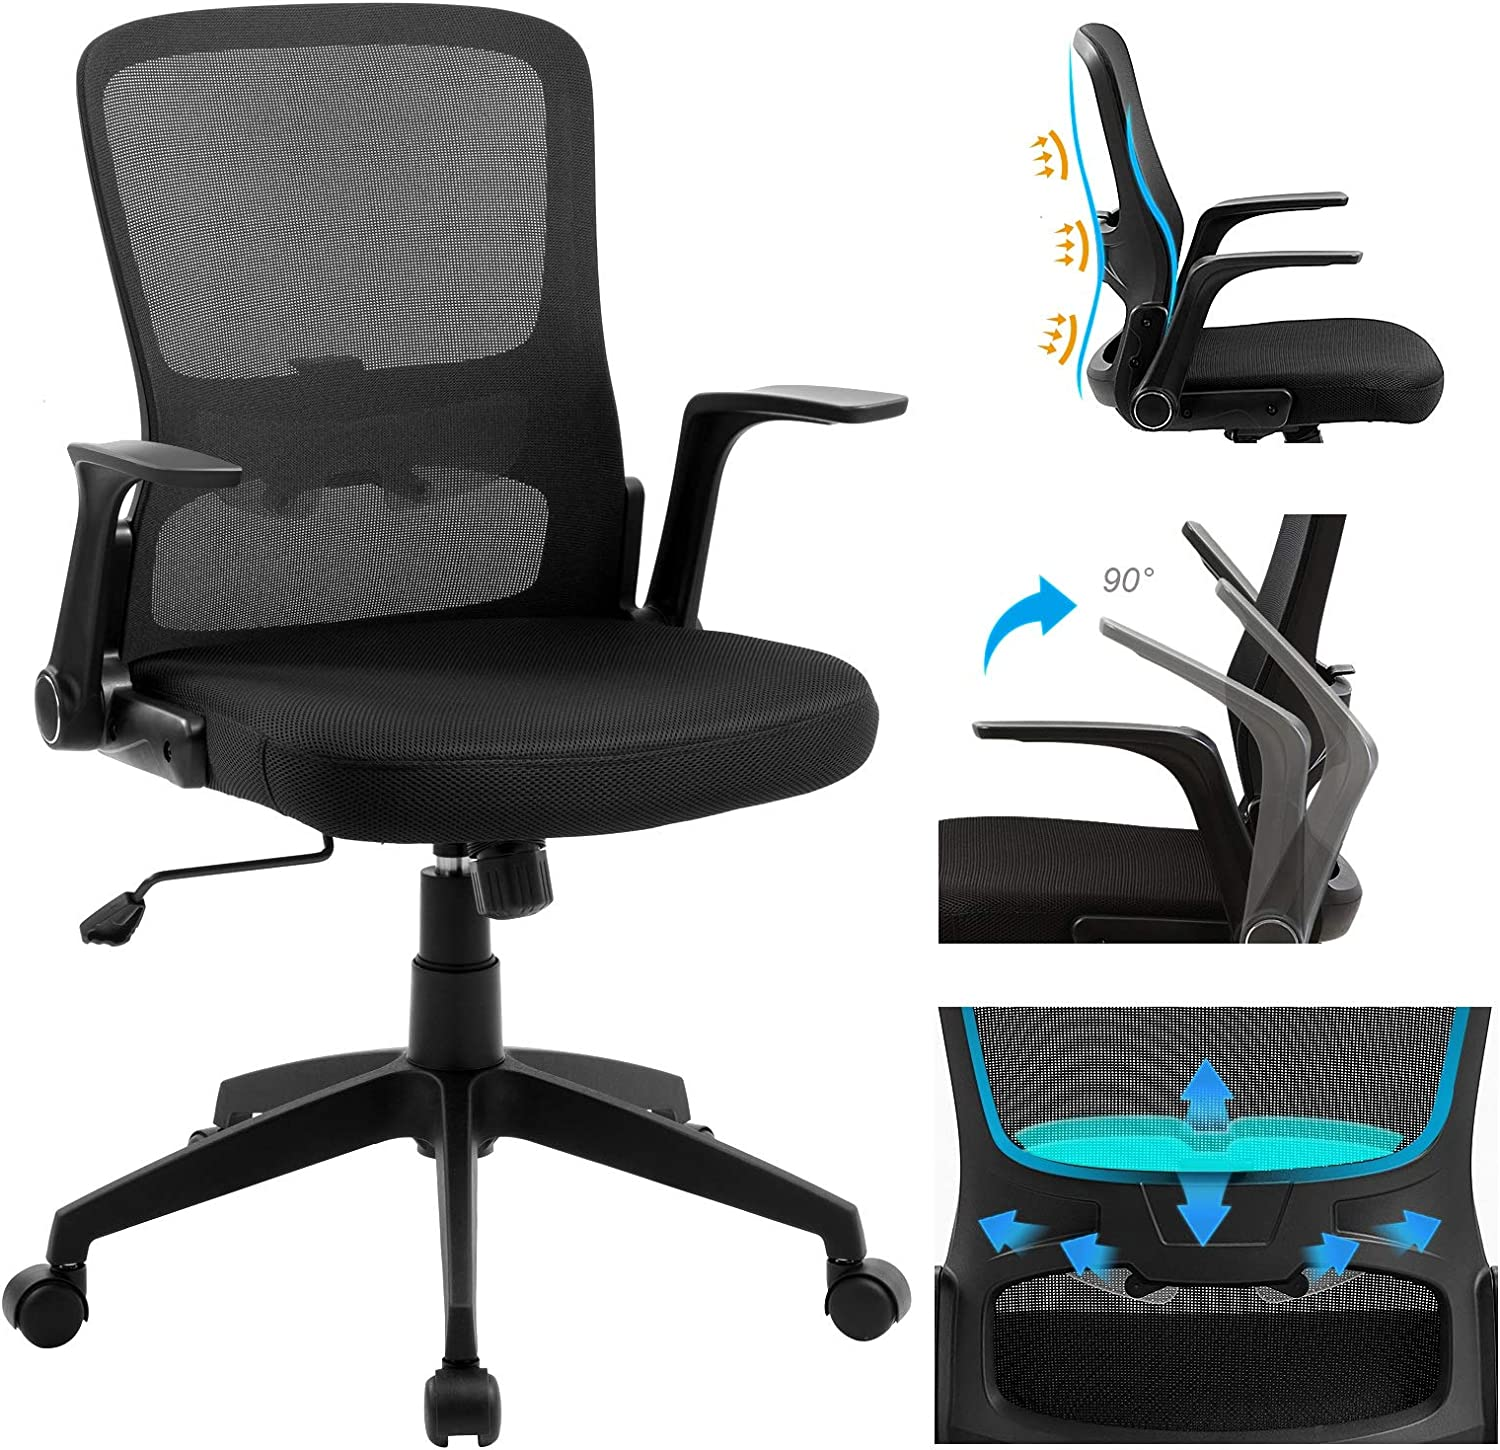 Anacci Office Chair Mid Back Desk Chair With Adjustable Lumbar Support Mesh Computer Chair With Flip Up Armrests Rocking Backrest Hold Up To 250lbs Black Kitchen Dining